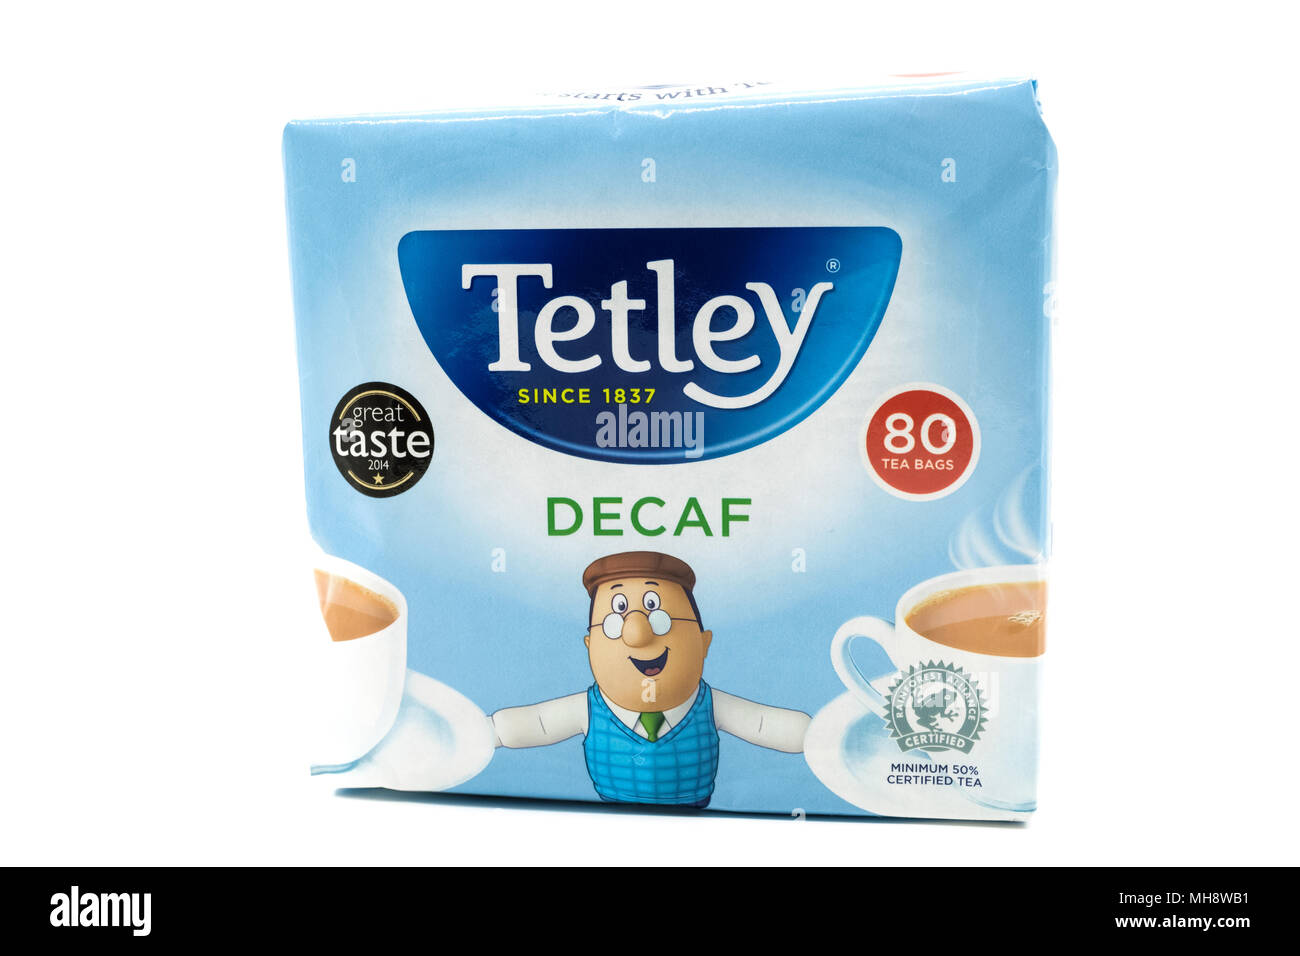 Largs, SCotland, UK - April 25, 2018:                                       Recyclable Paper based  Container or packet of Tetley Decaf Tea in agreeme - Stock Image